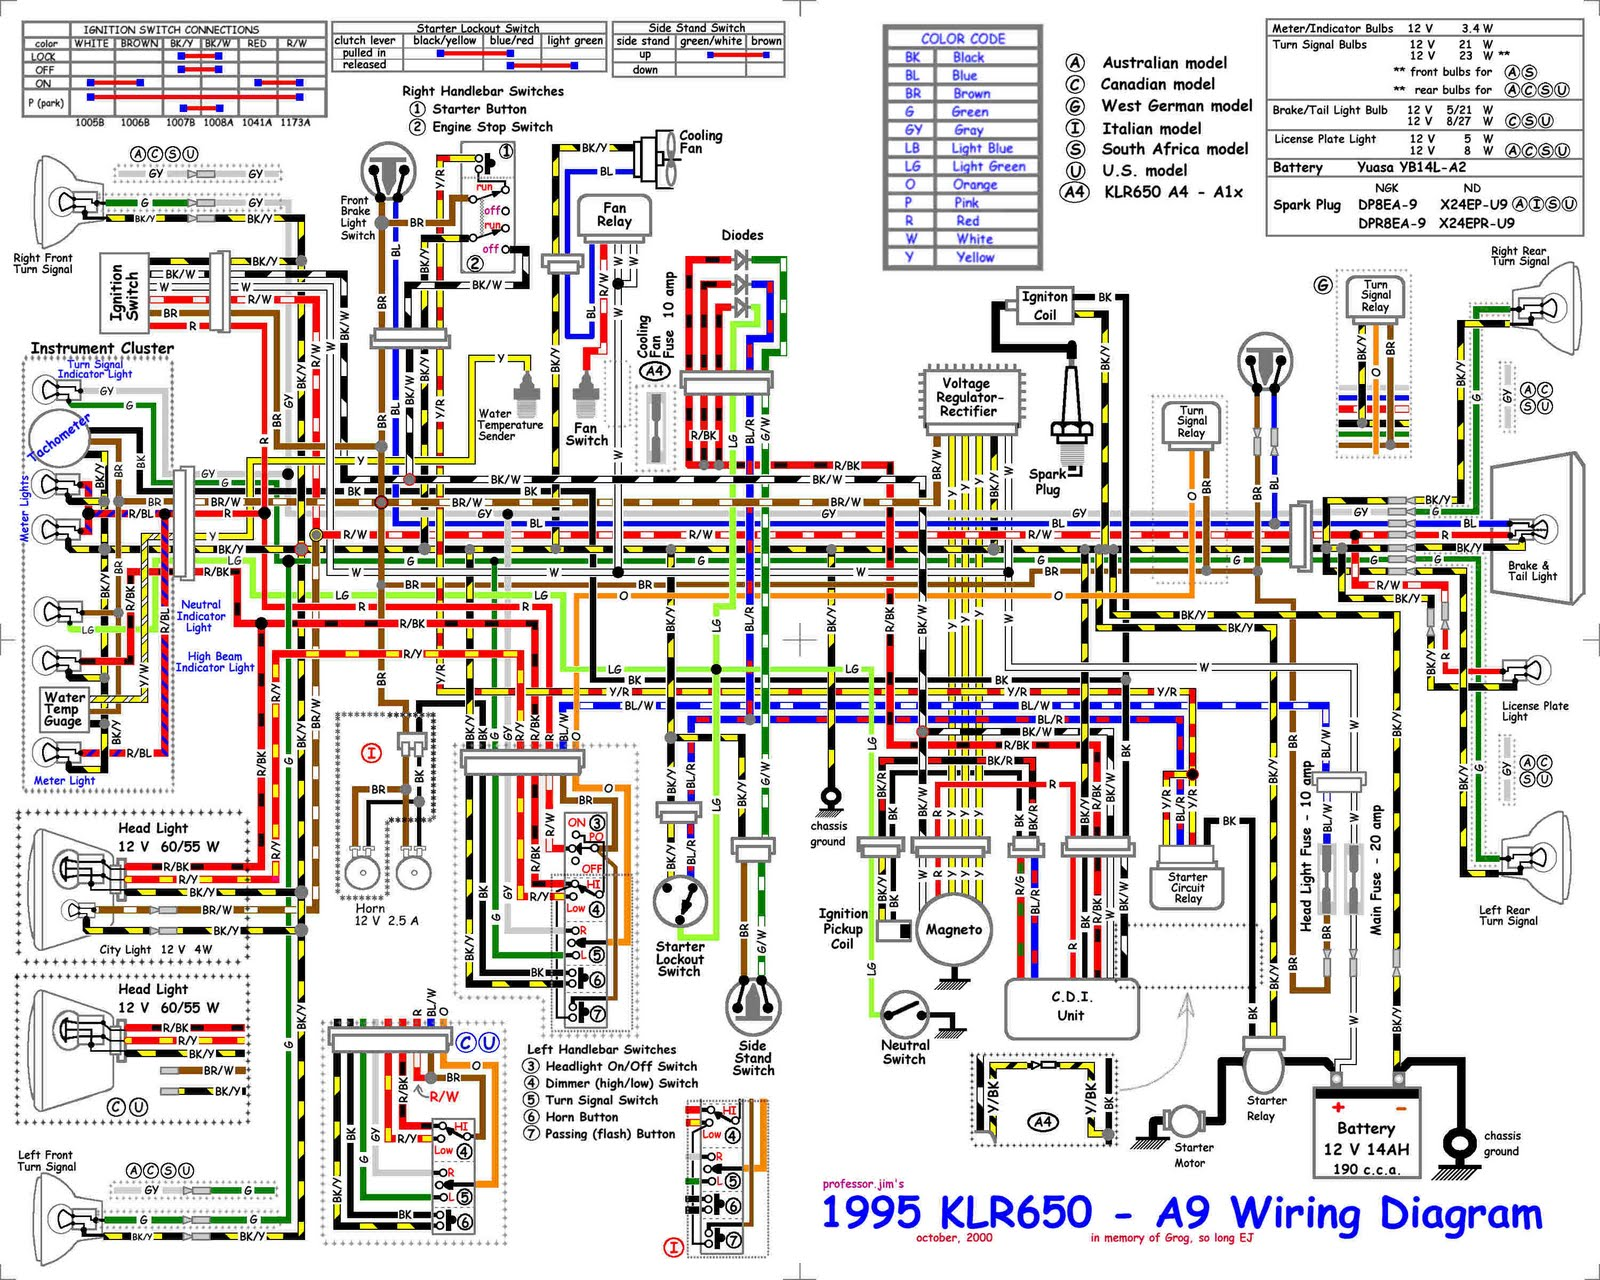 1974 monte carlo wiring diagram auto wiring diagrams premium automotive electrical wiring diagrams 1970 Chevrolet Monte Carlo at creativeand.co